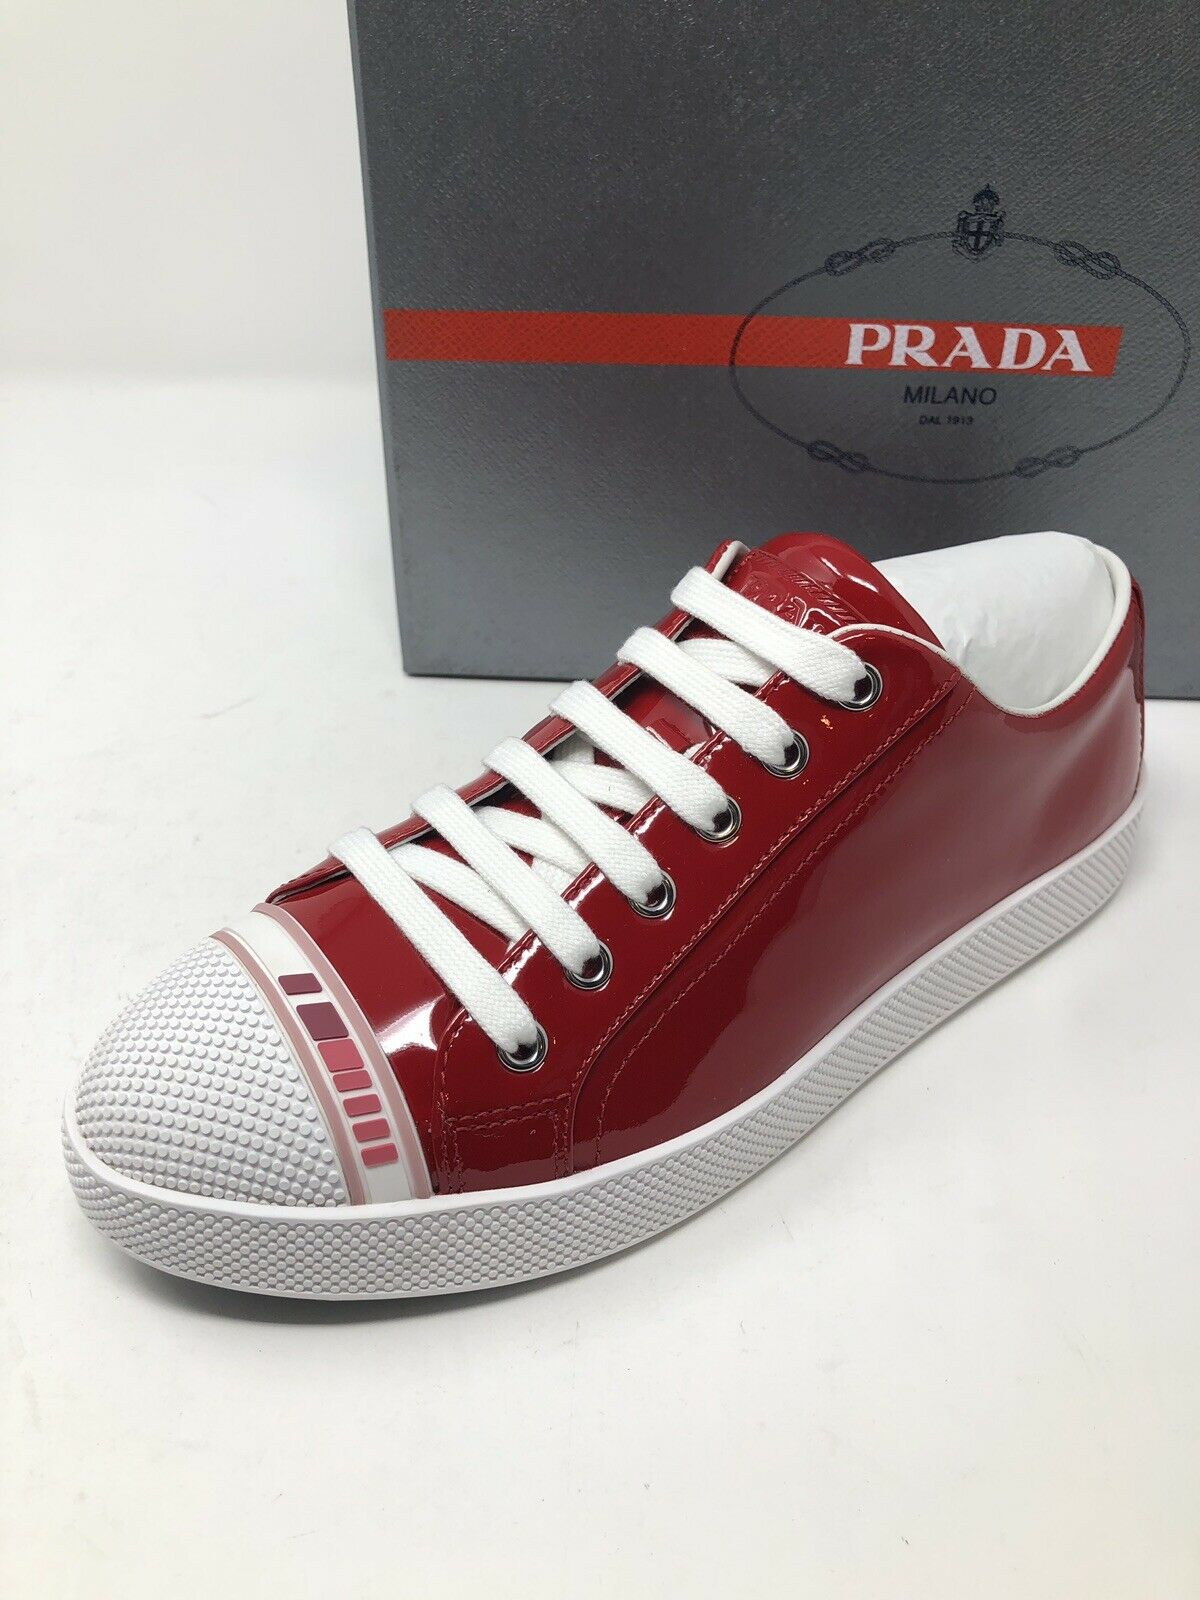 575 New PRADA Womens Vernice Red Sneakers Ladies shoes Size 6 US 36 UK